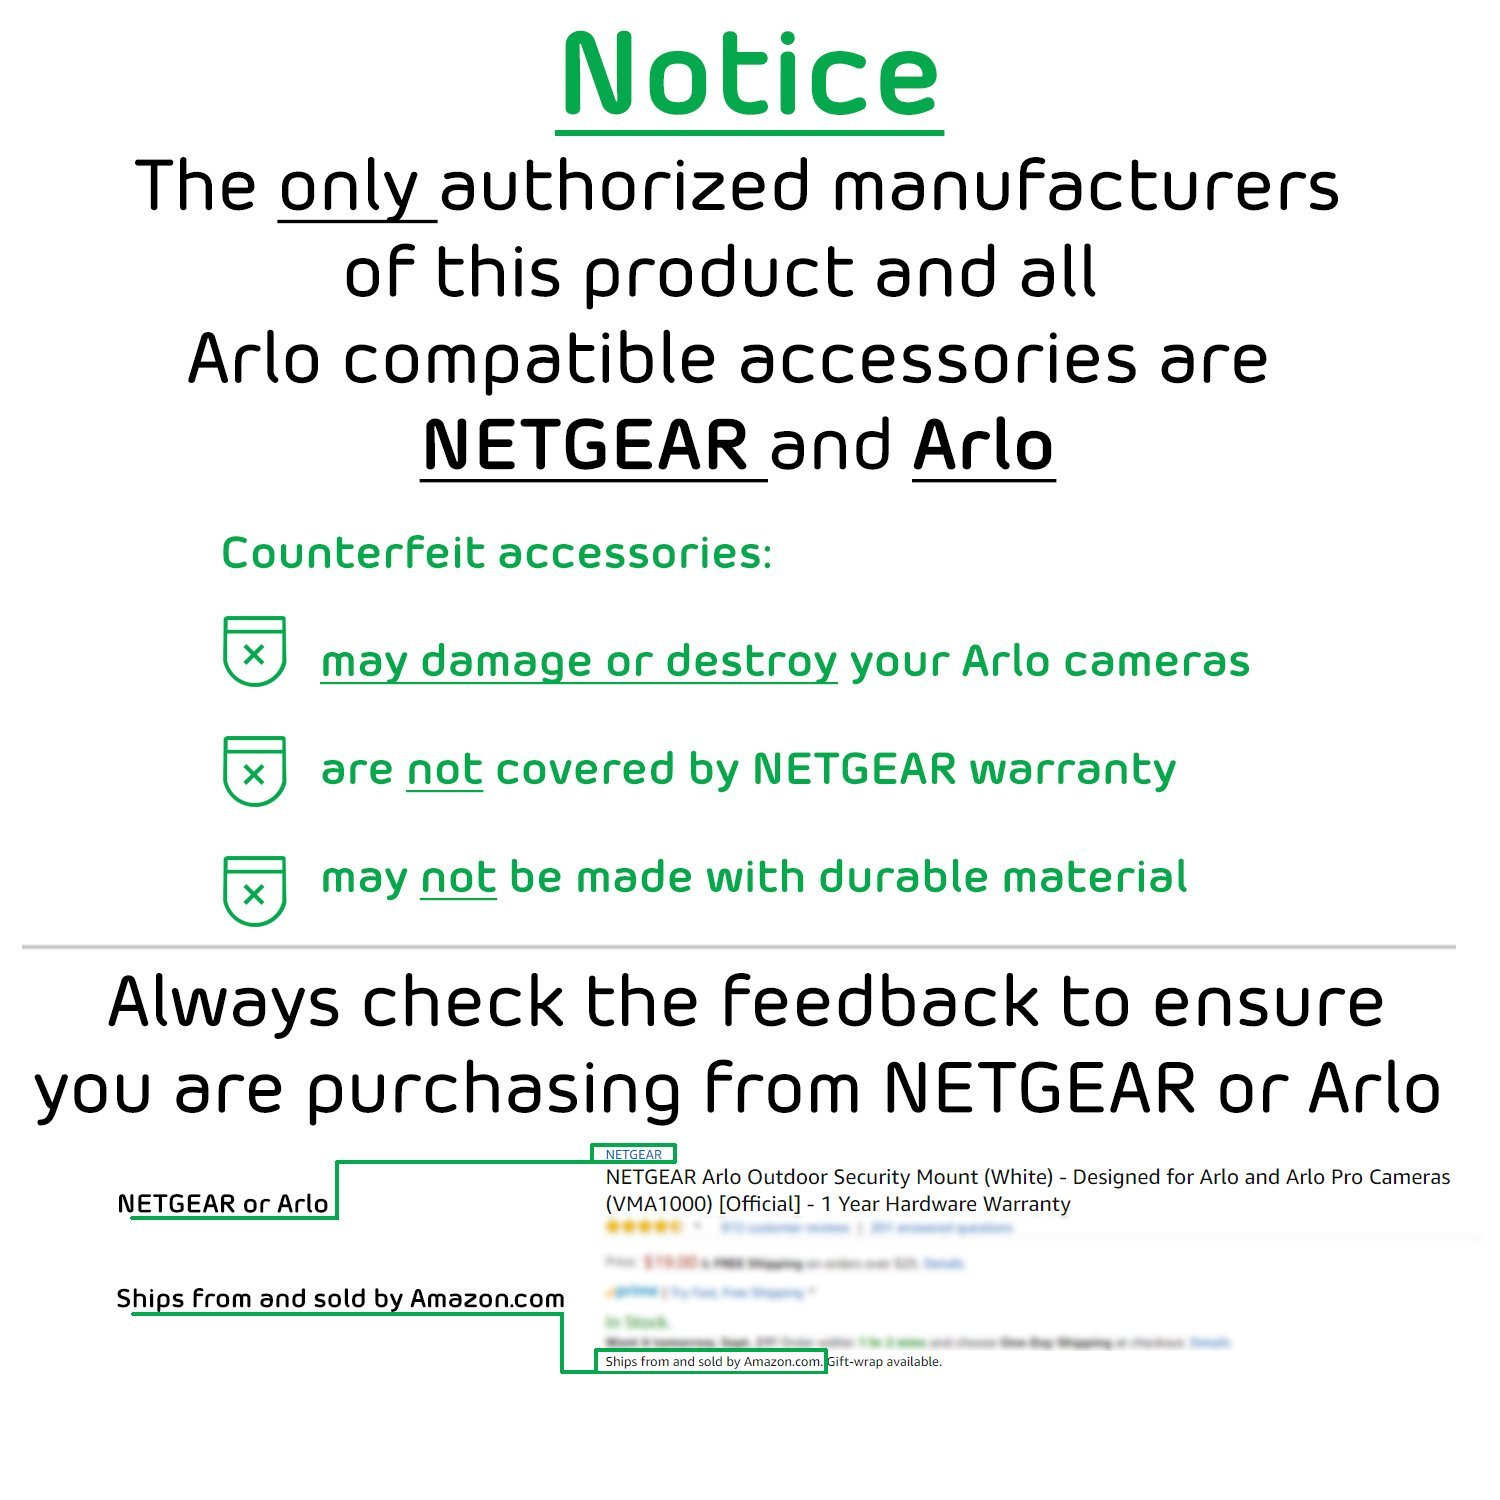 Arlo Pro by NETGEAR Security System with Siren - 2 Rechargeable Wire-Free HD Cameras with Audio, Indoor/Outdoor, Night Vision (VMS4230), Works with Alexa by NETGEAR (Image #5)